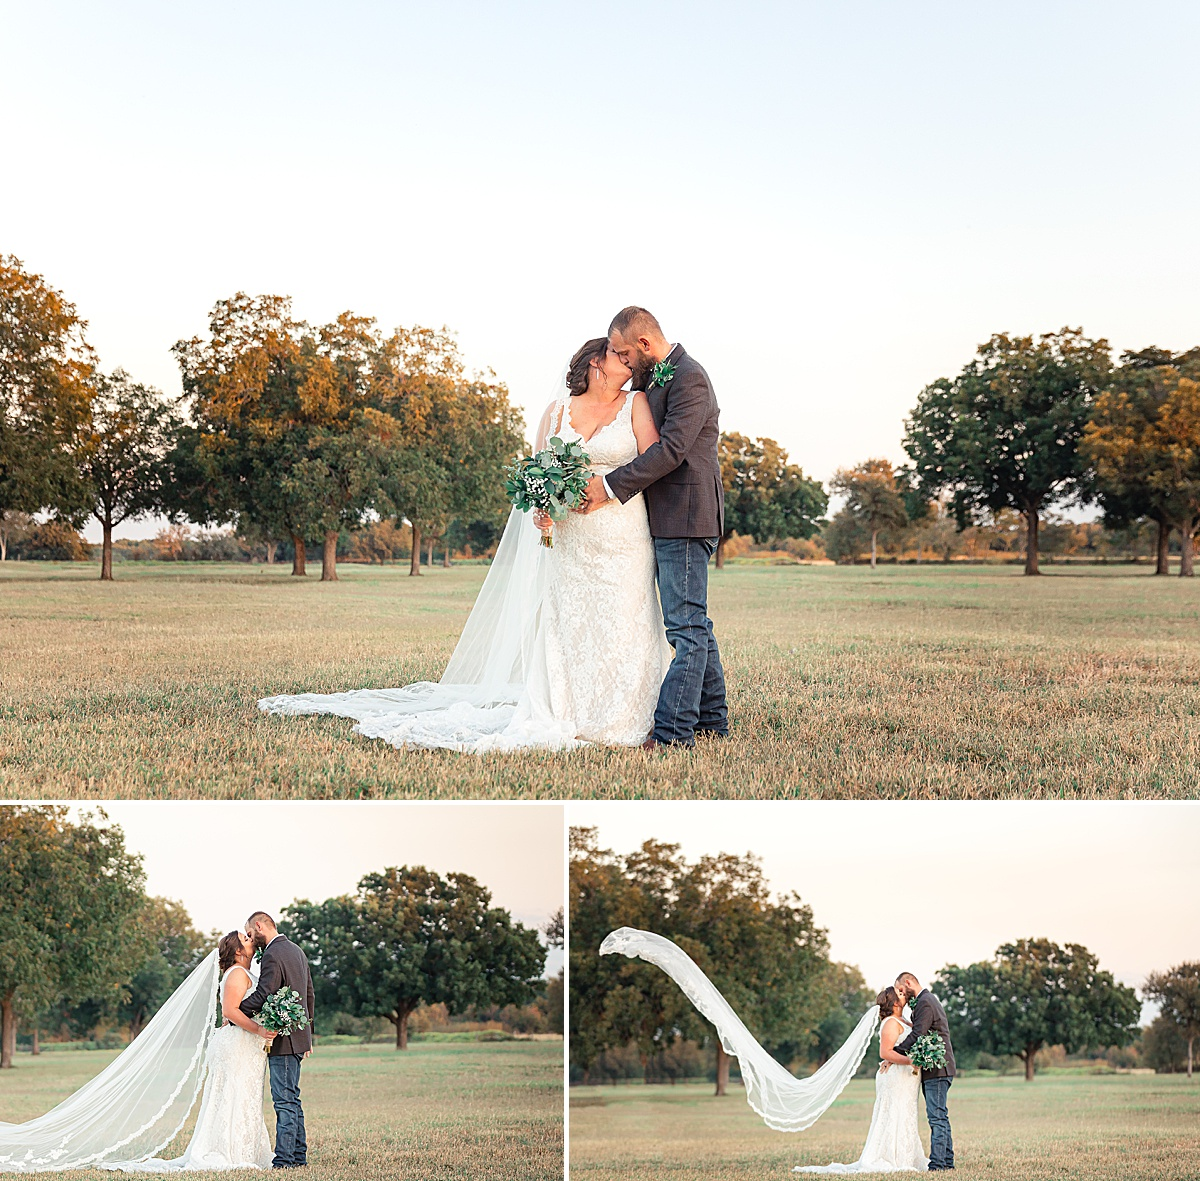 Rustic-Texas-Wedding-Hollow-Creek-Ranch-Carly-Barton-Photography_0087.jpg